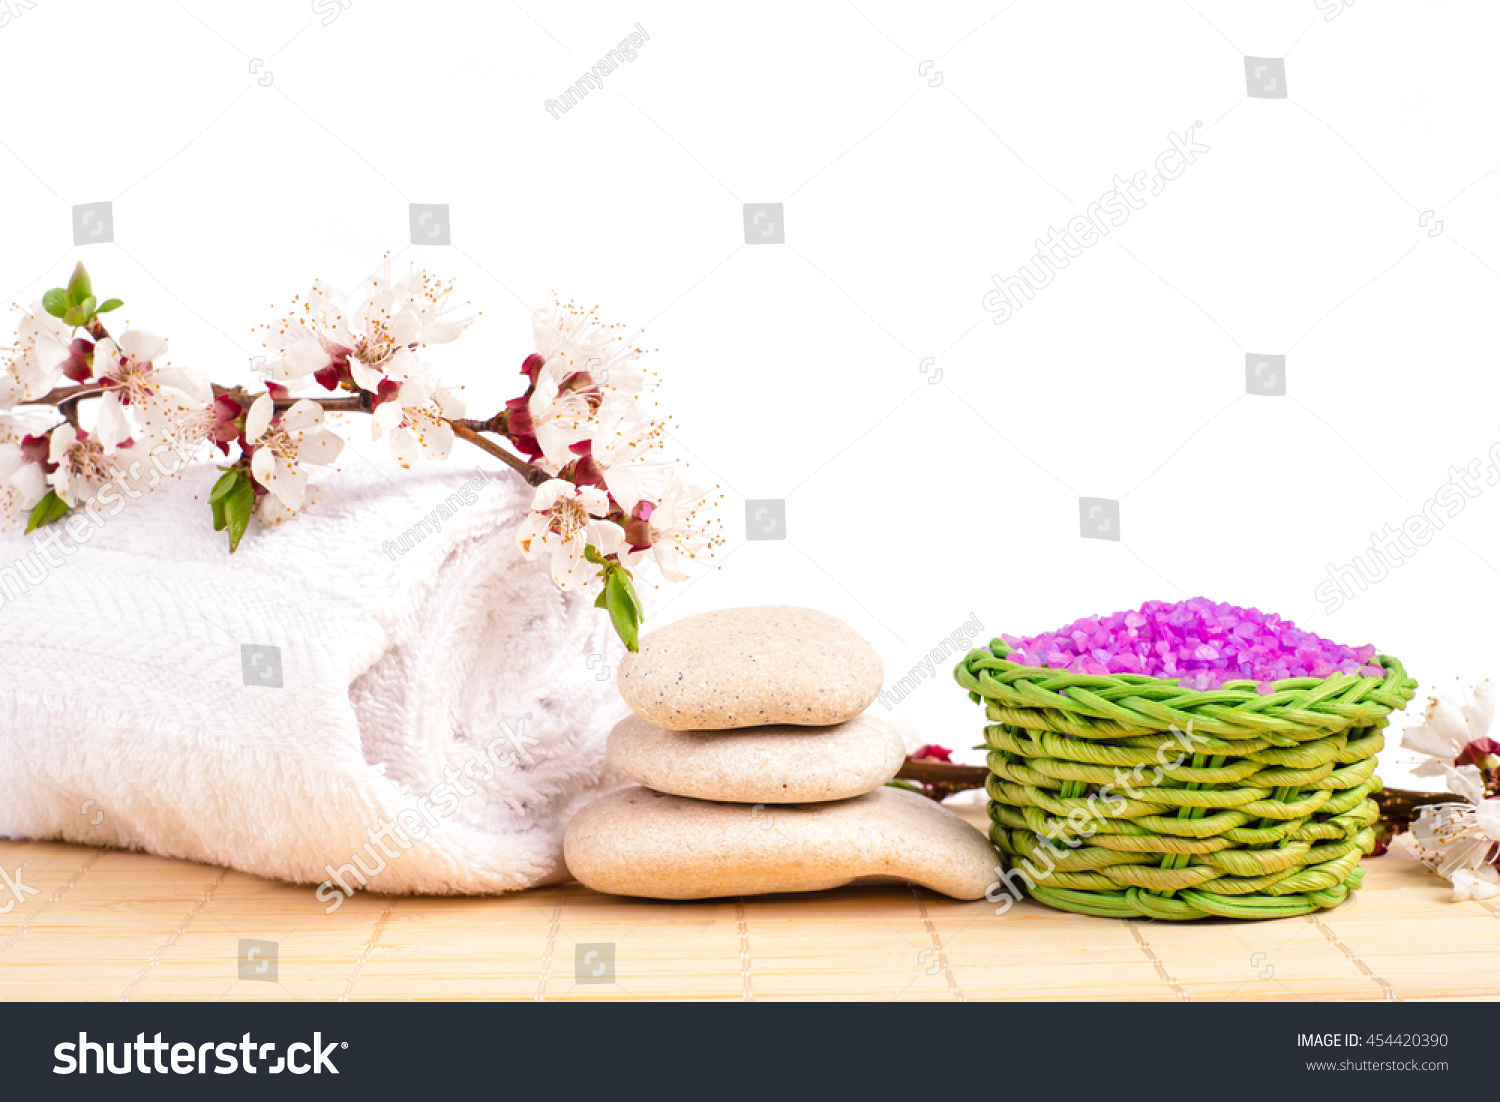 Spa salt stones towel flower branch stock photo edit now 454420390 spa salt and stones towel flower branch for beauty and health healthy relaxation izmirmasajfo